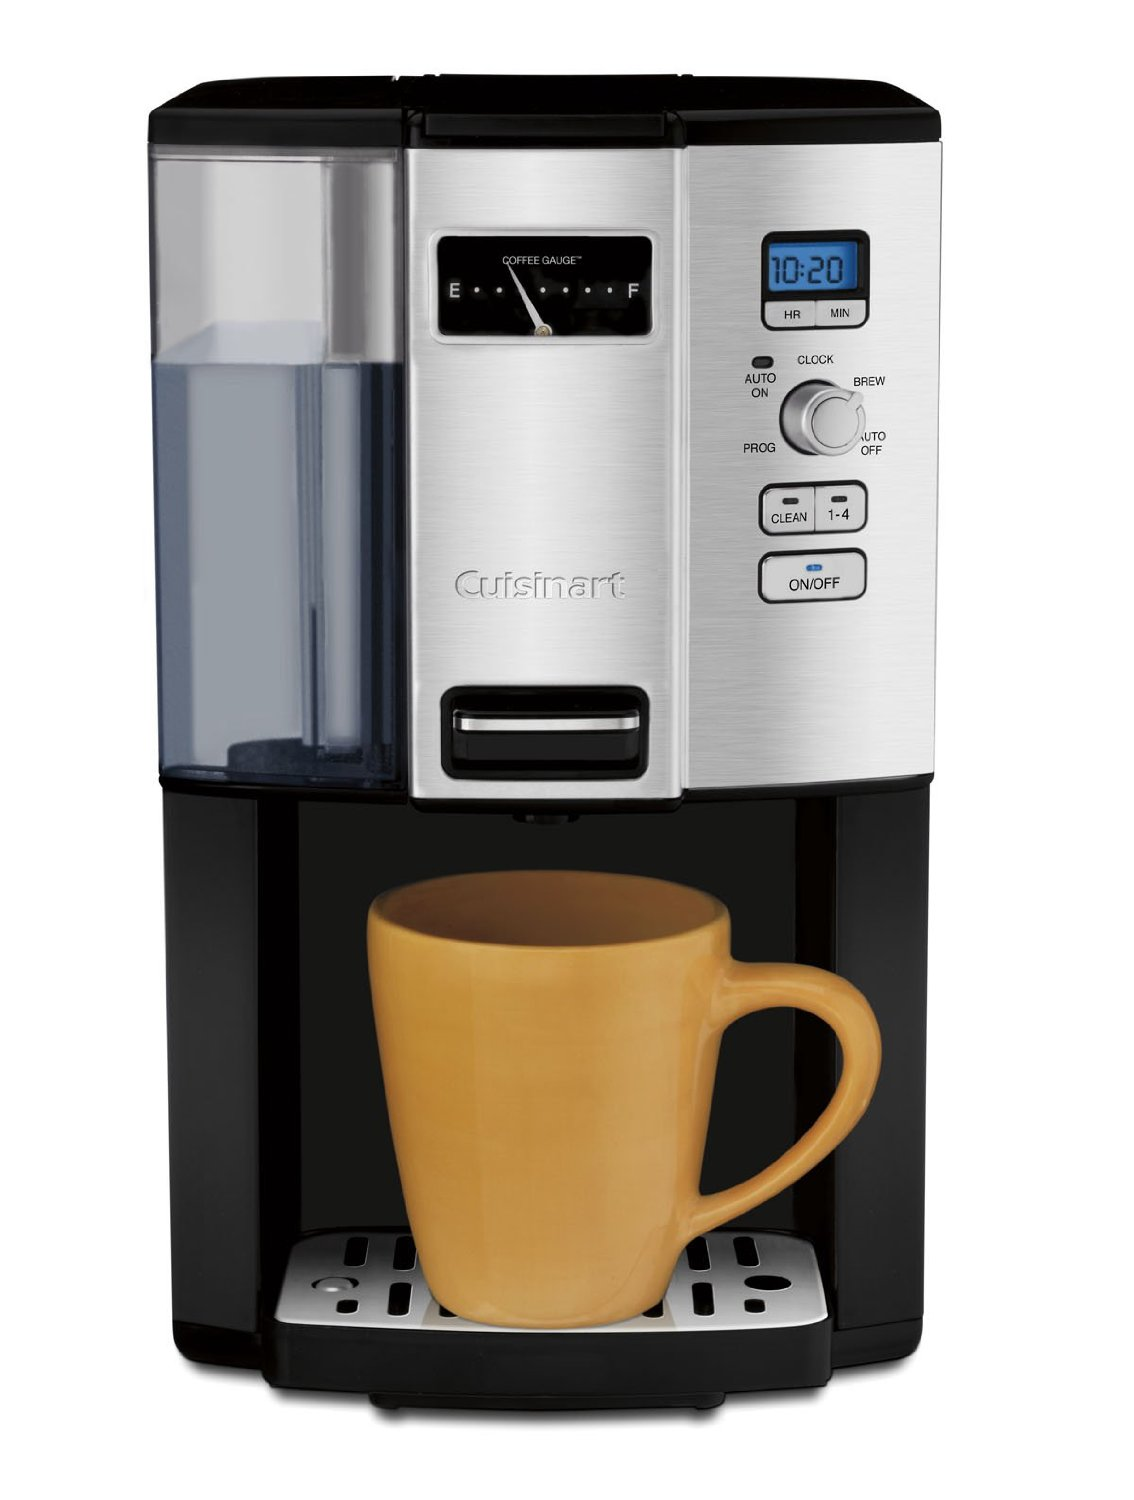 10 Best Home Coffee Makers - Top Rated Coffee Machines You ...